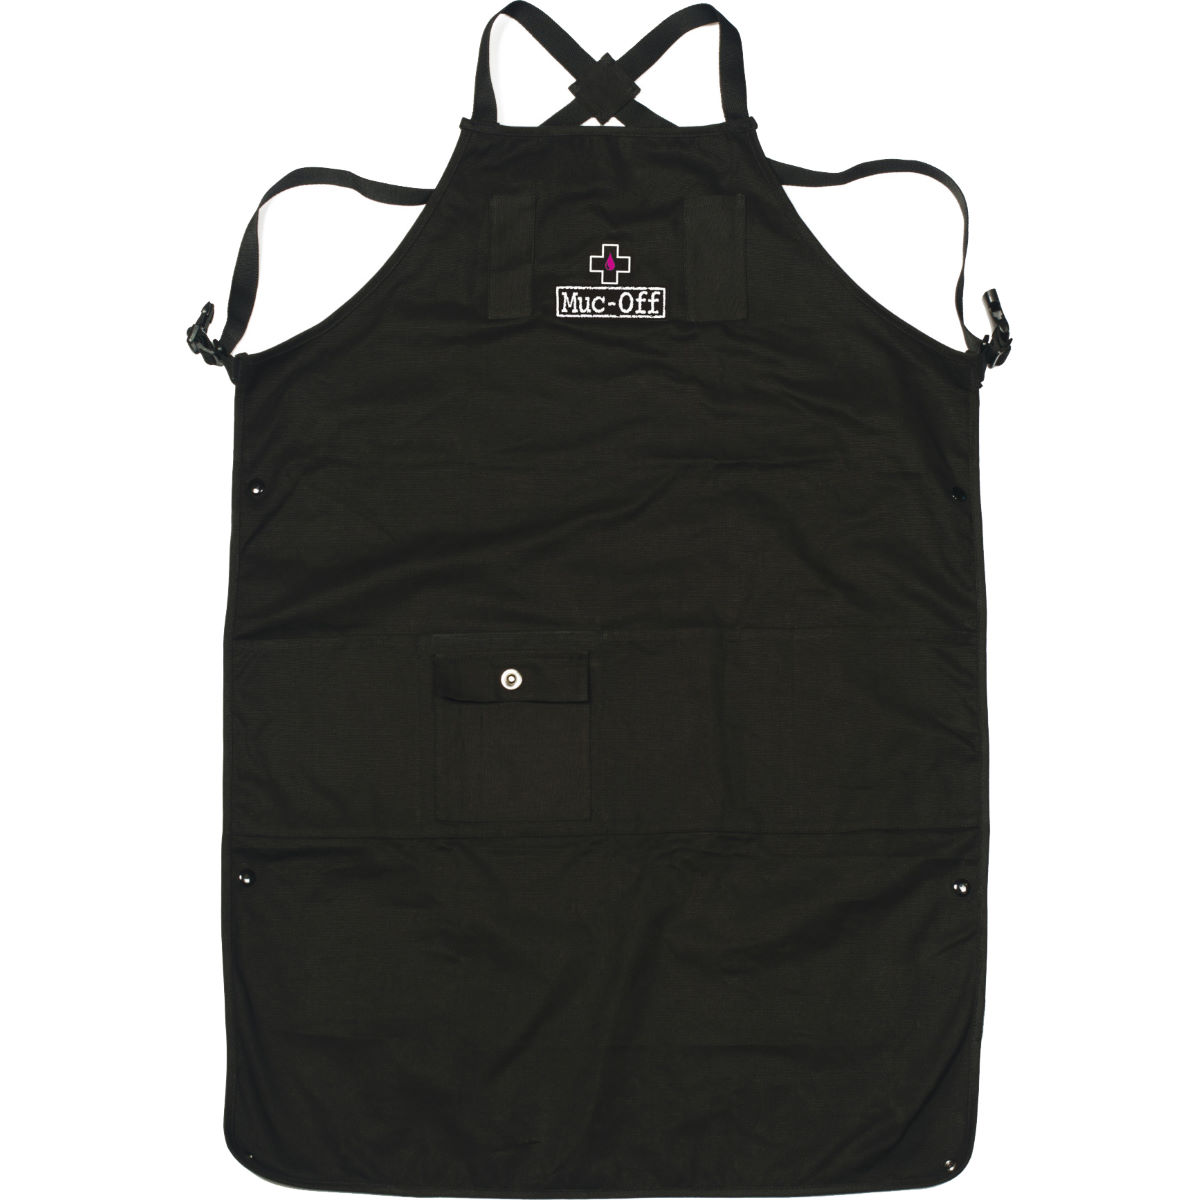 Muc-Off Muc-Off Workshop Apron   Aprons